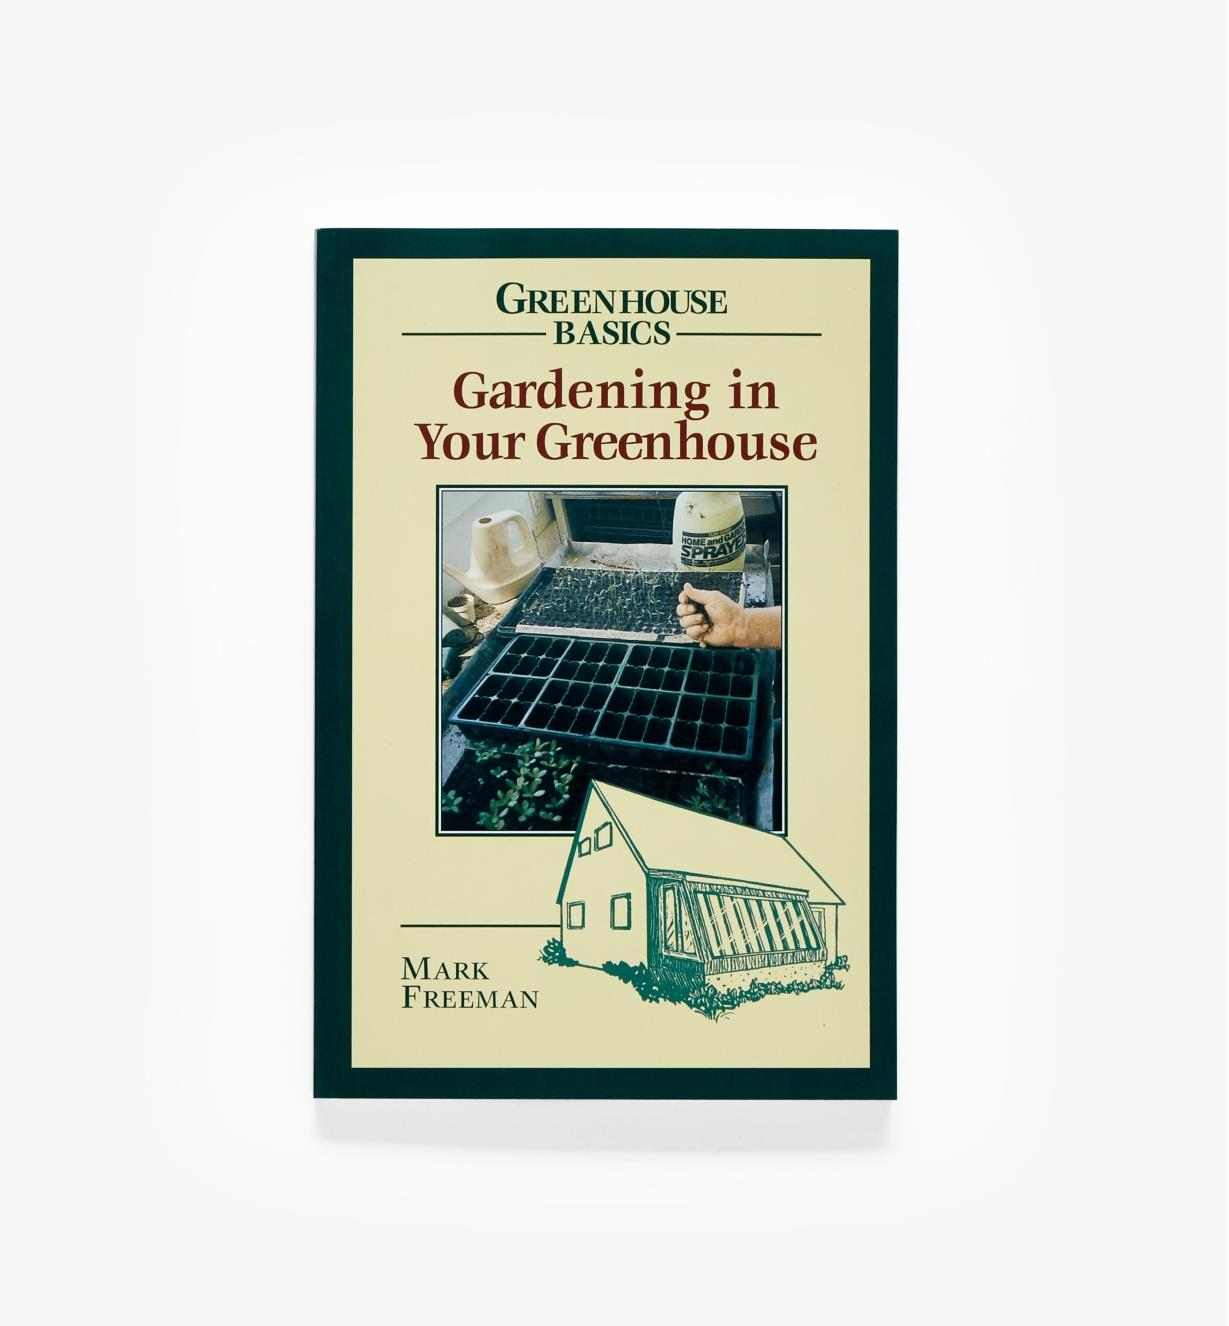 LA824 - Gardening in Your Greenhouse